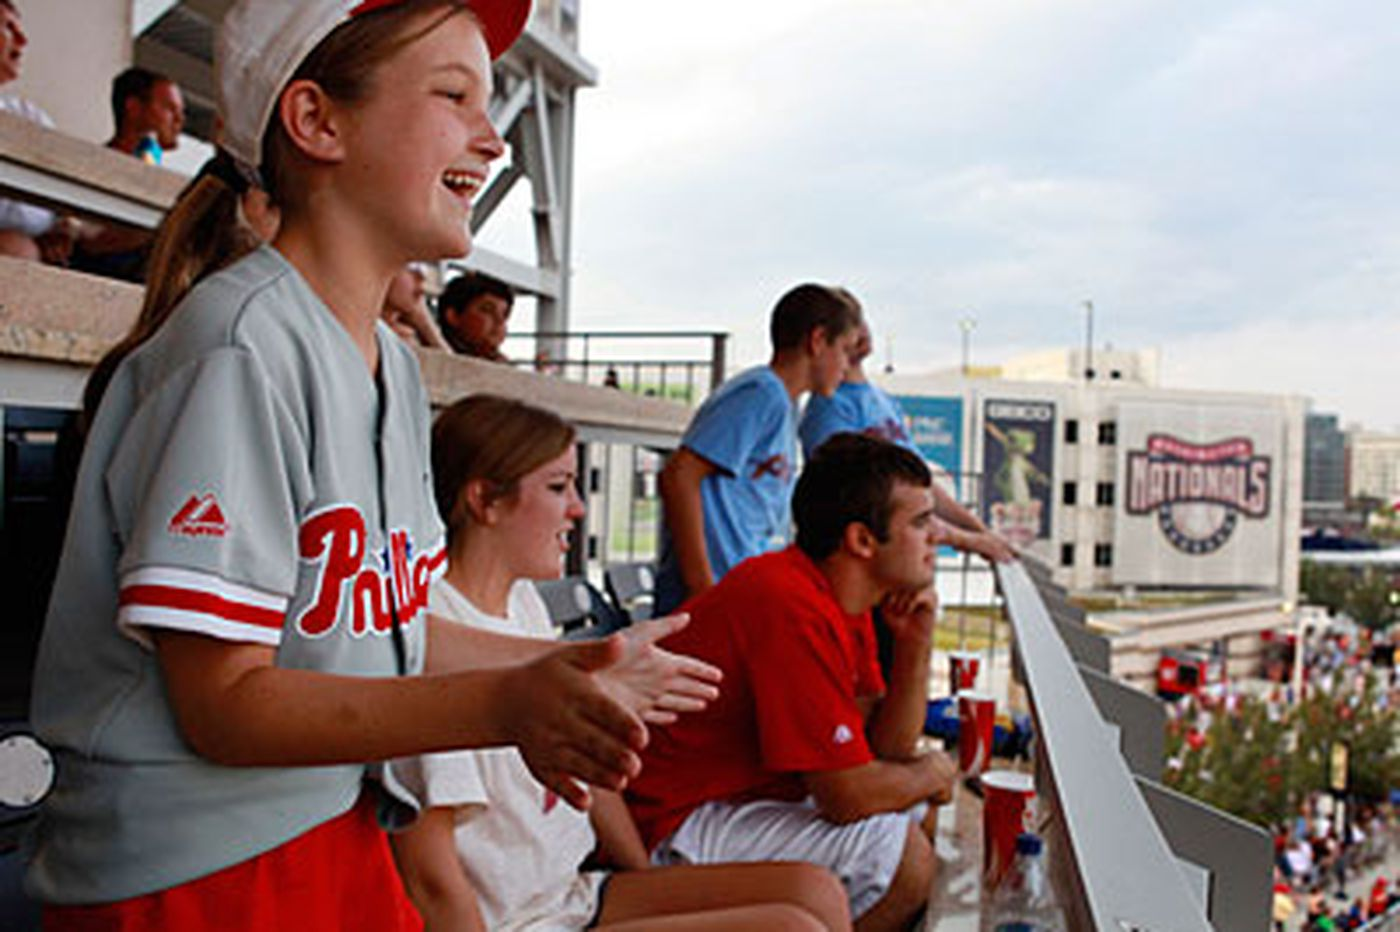 Nationals fight invasion of Phillies fans with ticket-sale restrictions